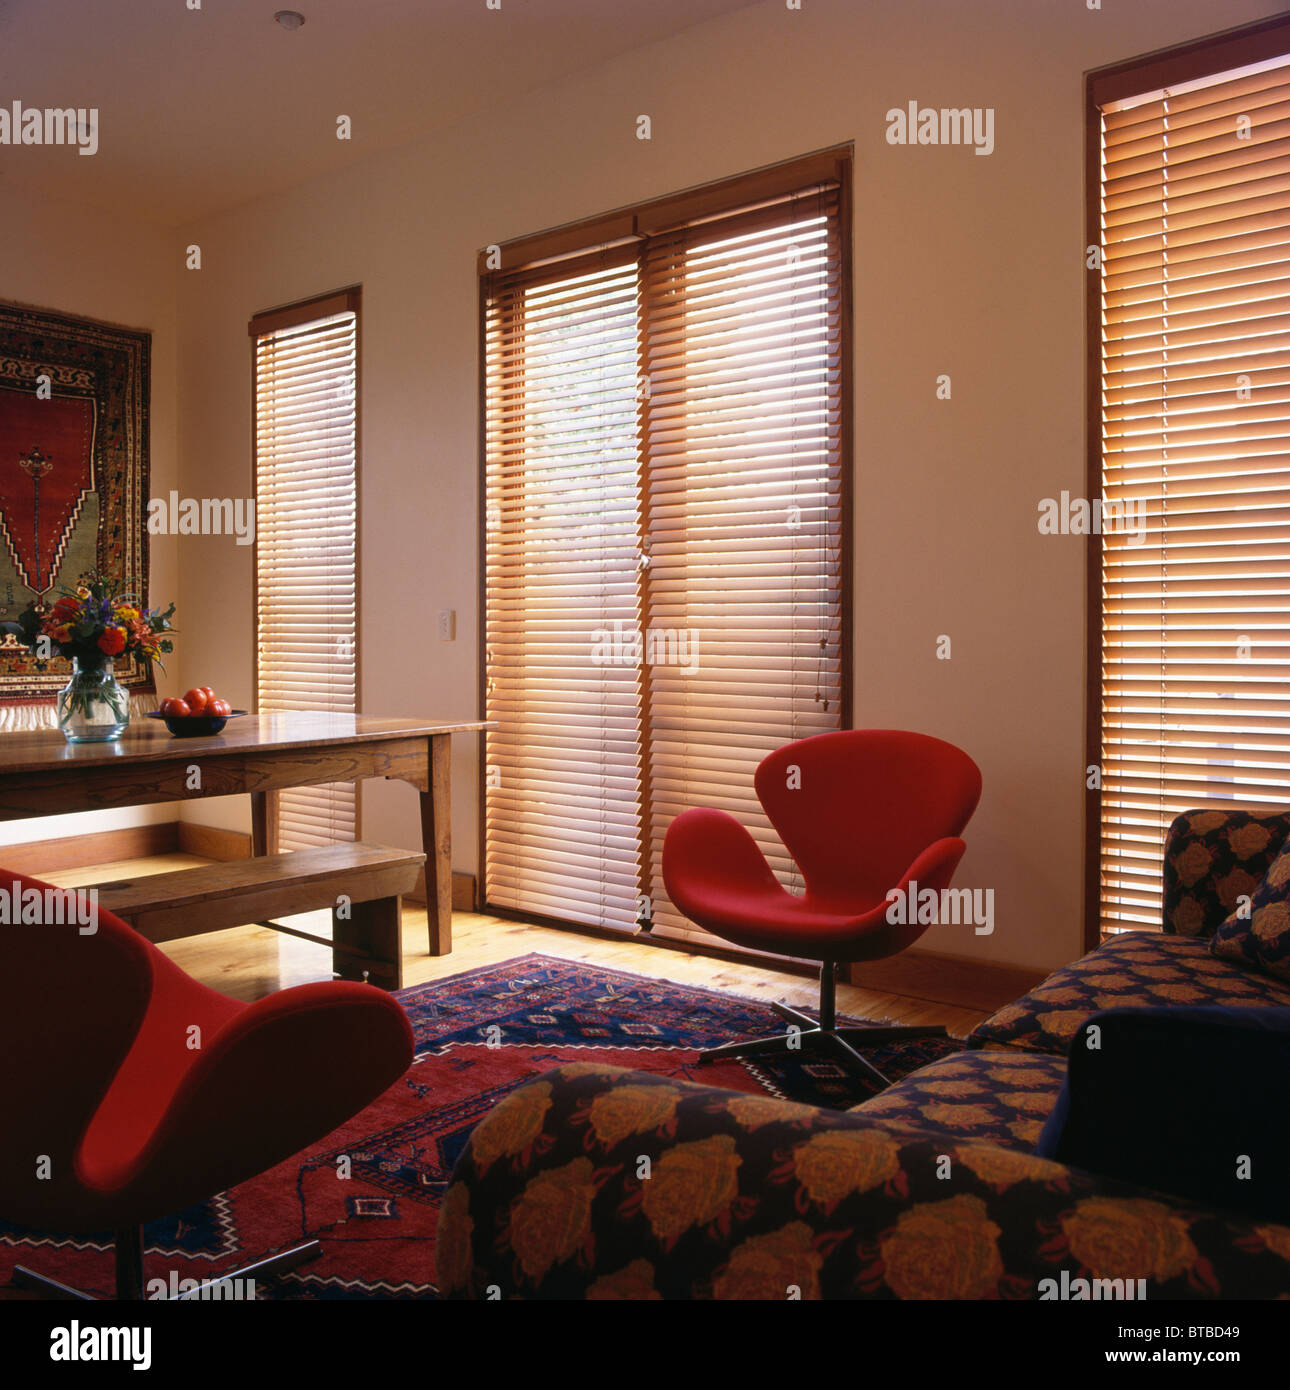 image stock blinds background free photo siding red of texture metal royalty louvers